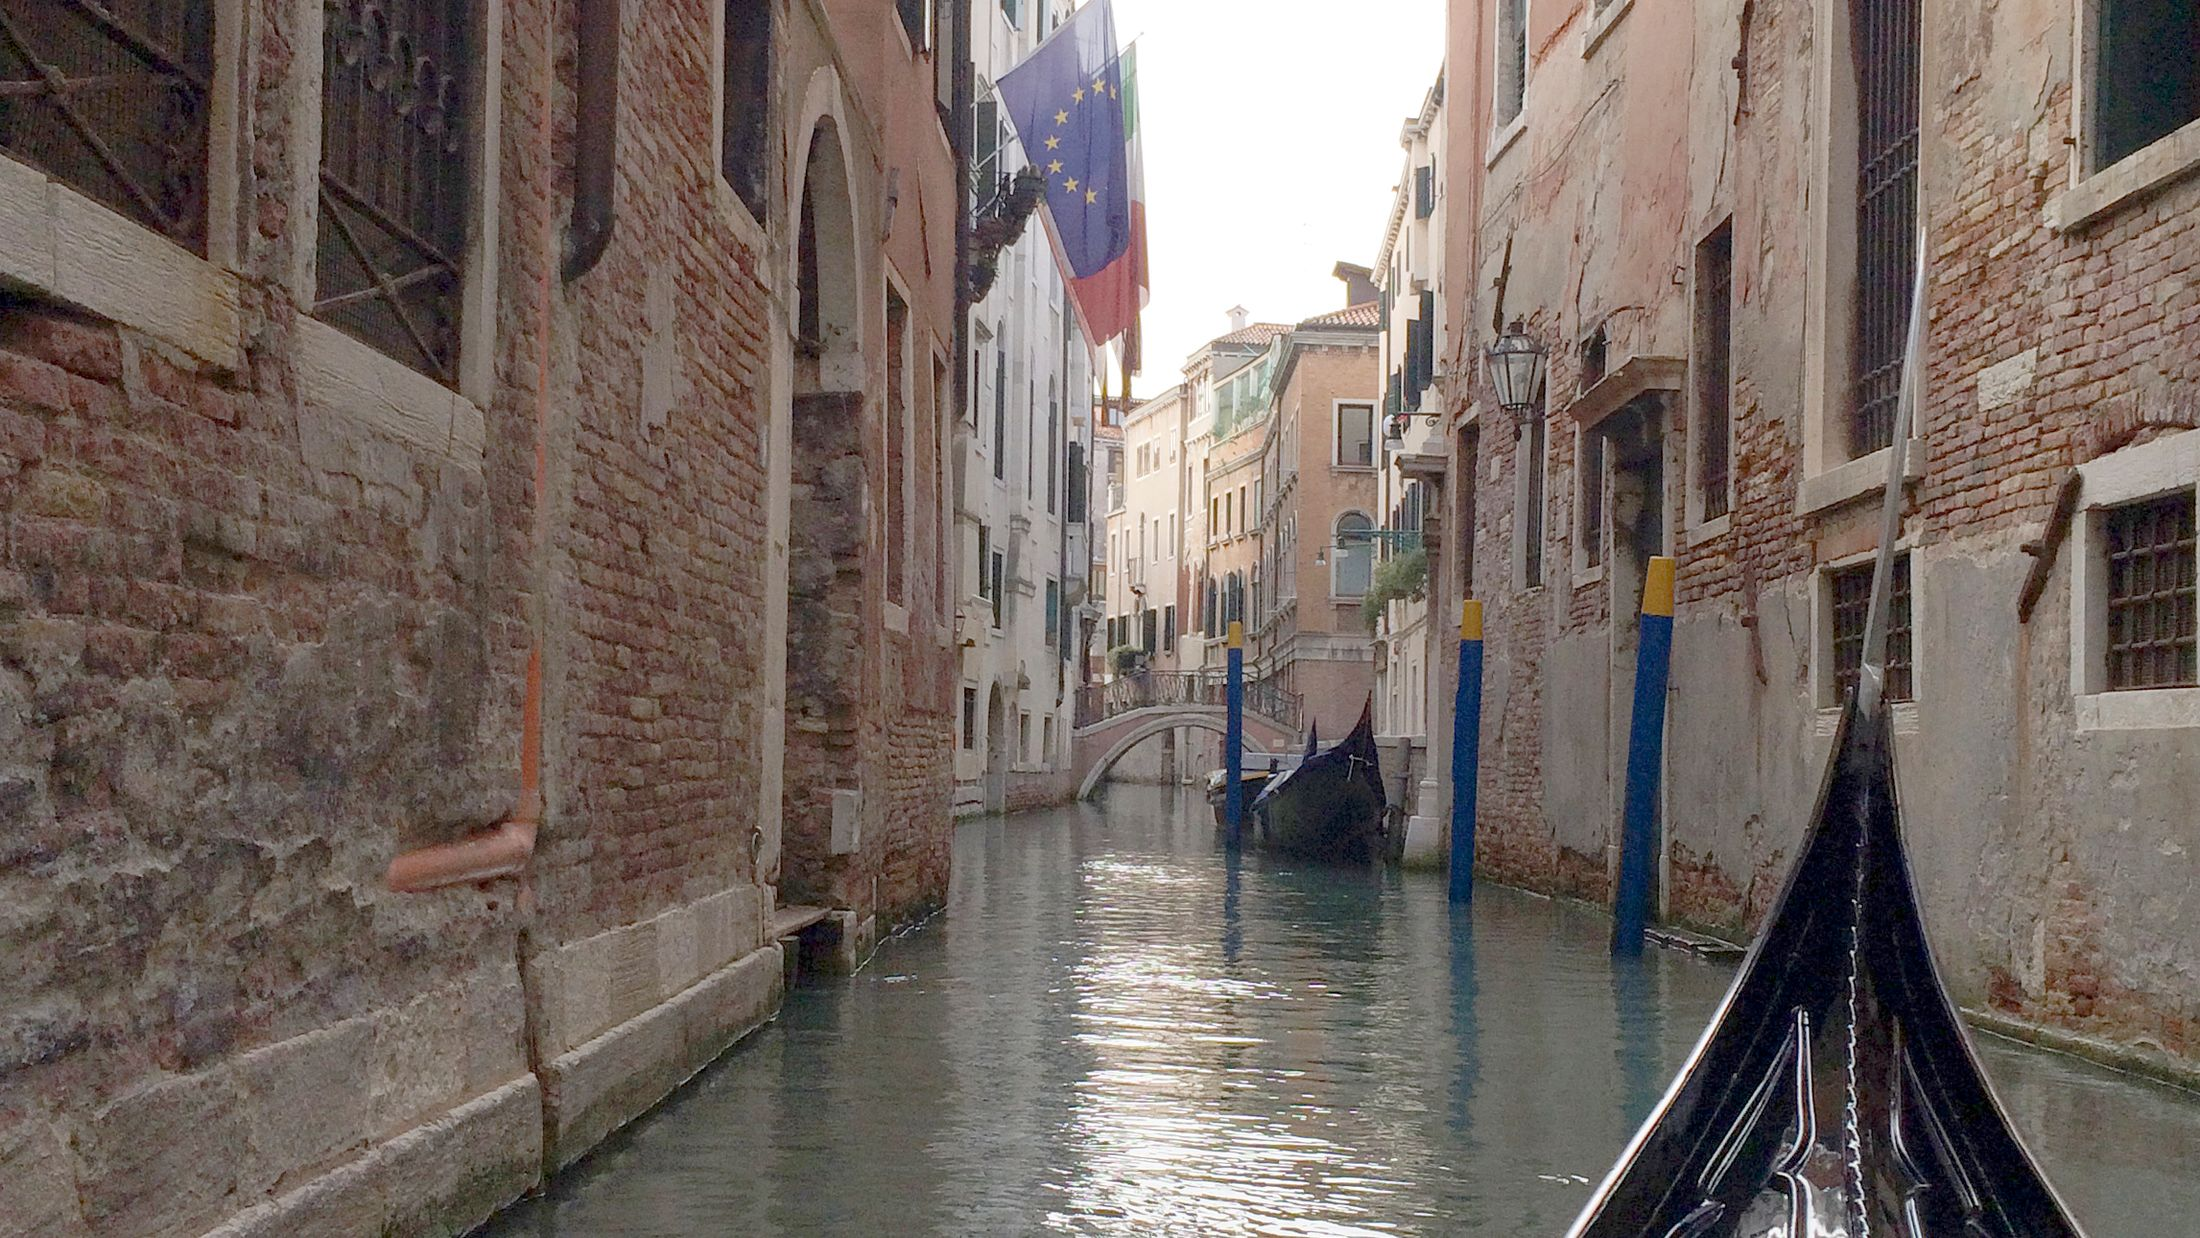 Photo from the canal in Venice